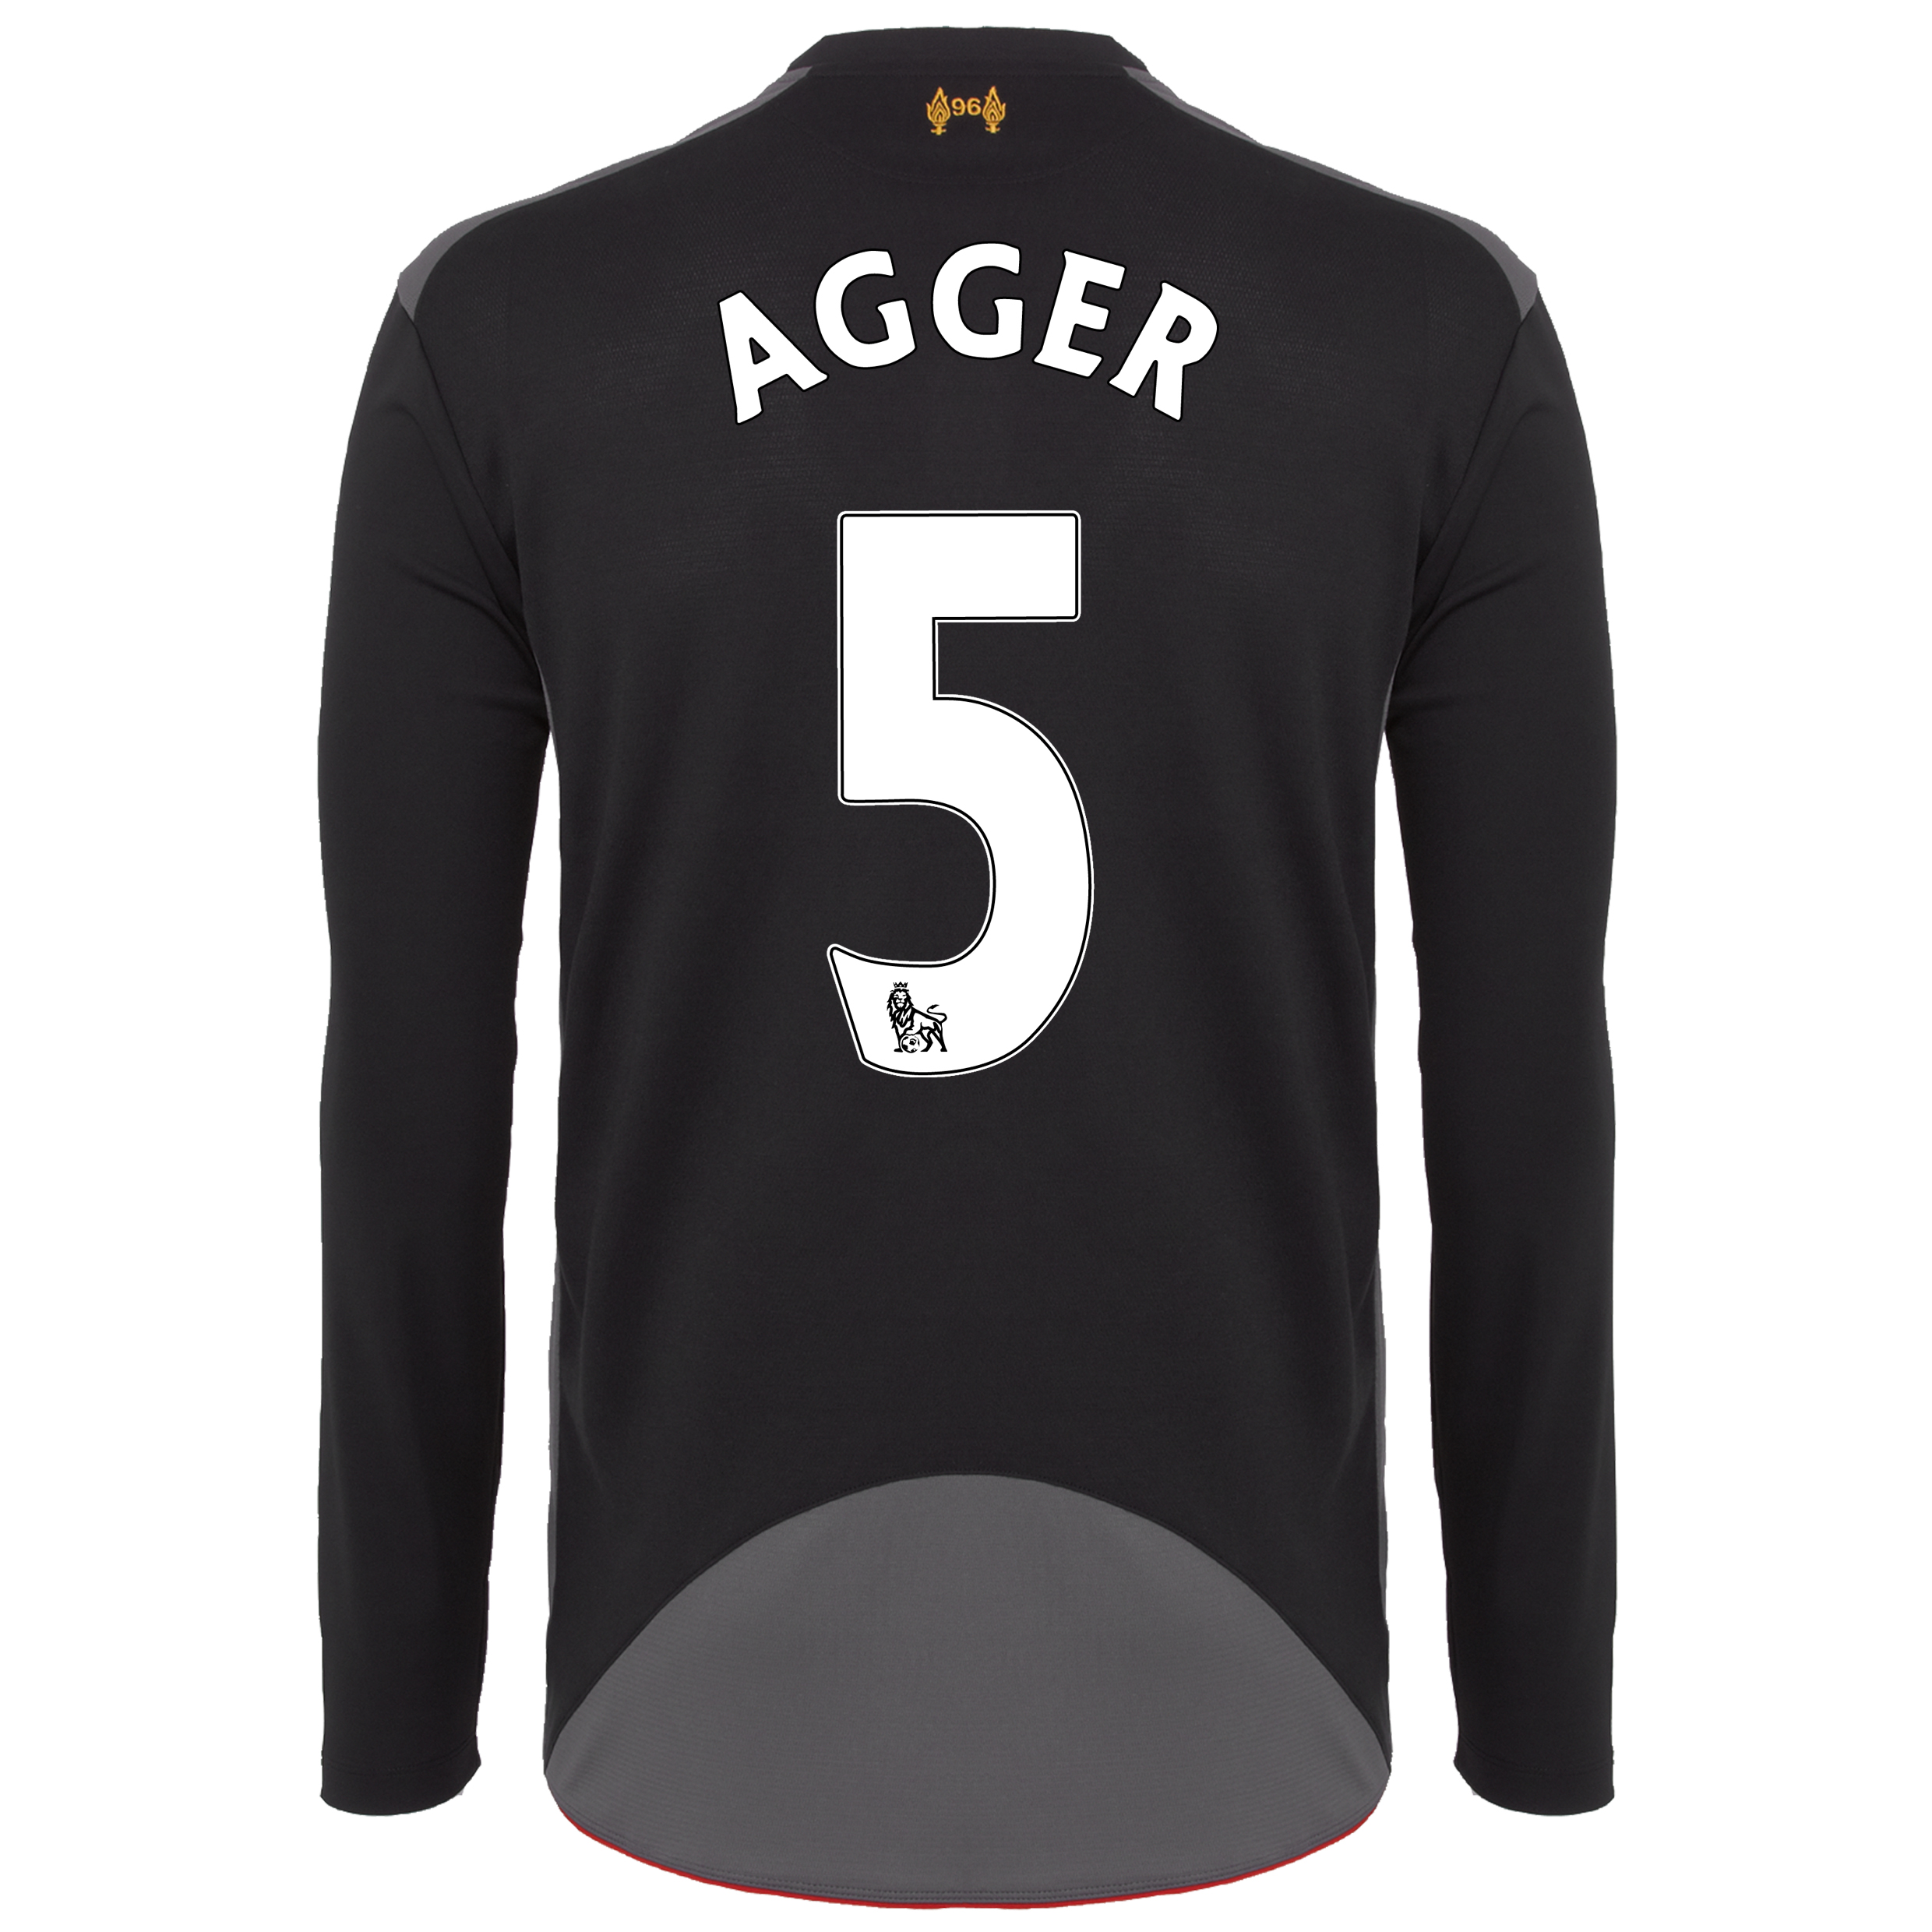 Liverpool Away Shirt 2012/13 - Long Sleeve - Youths with Agger 5 printing